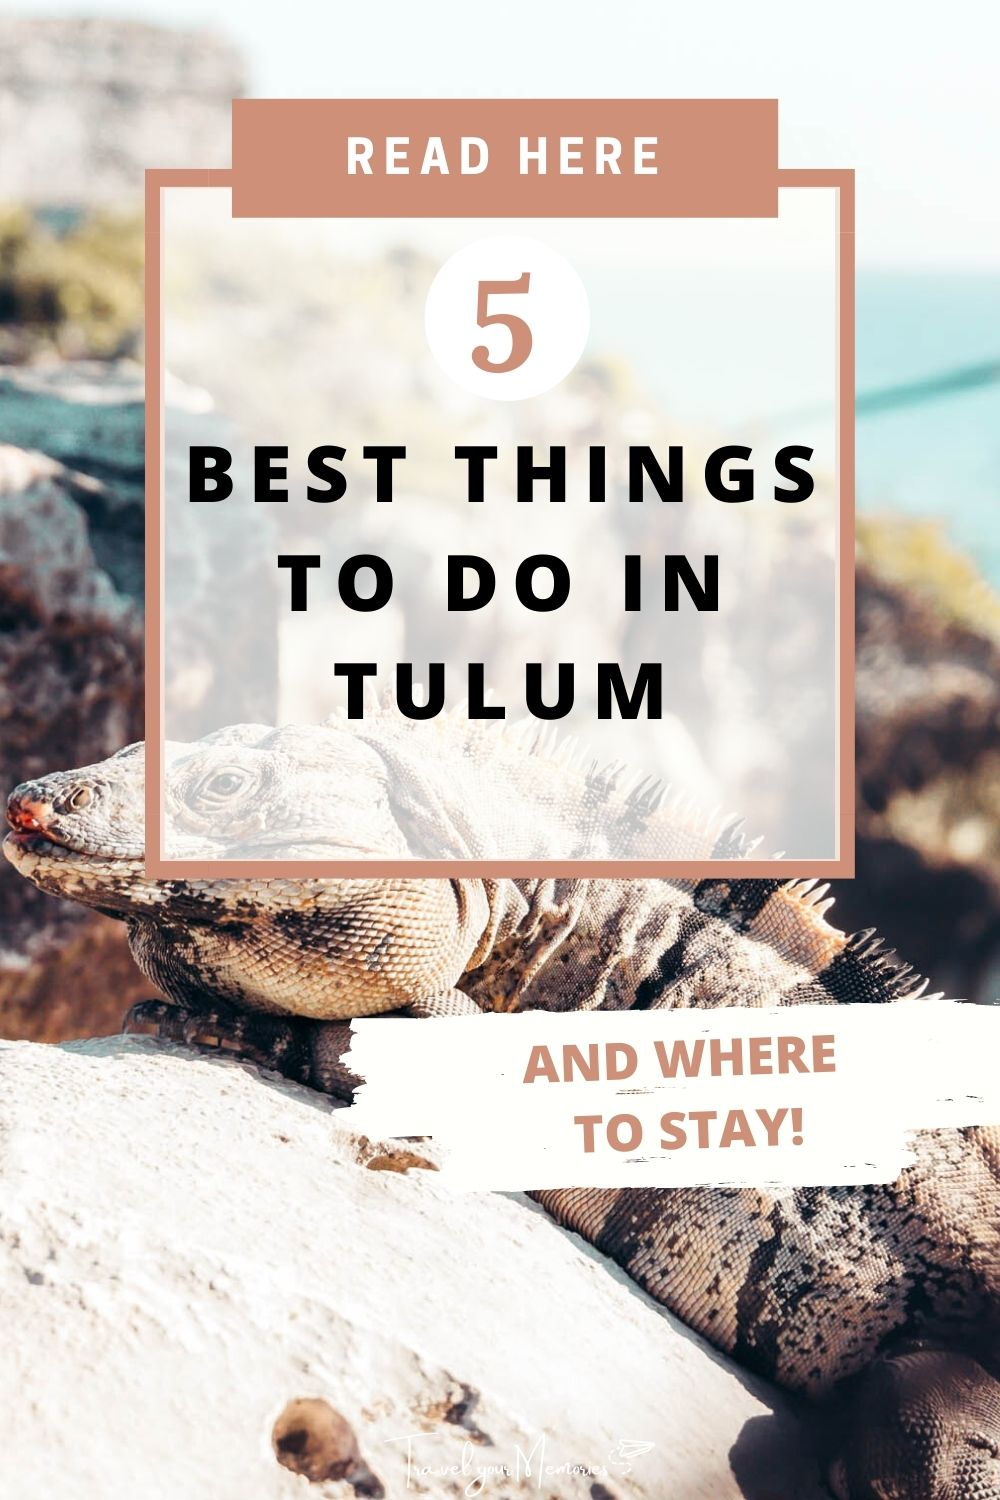 5 best things to do in Tulum & where to stay in Tulum?